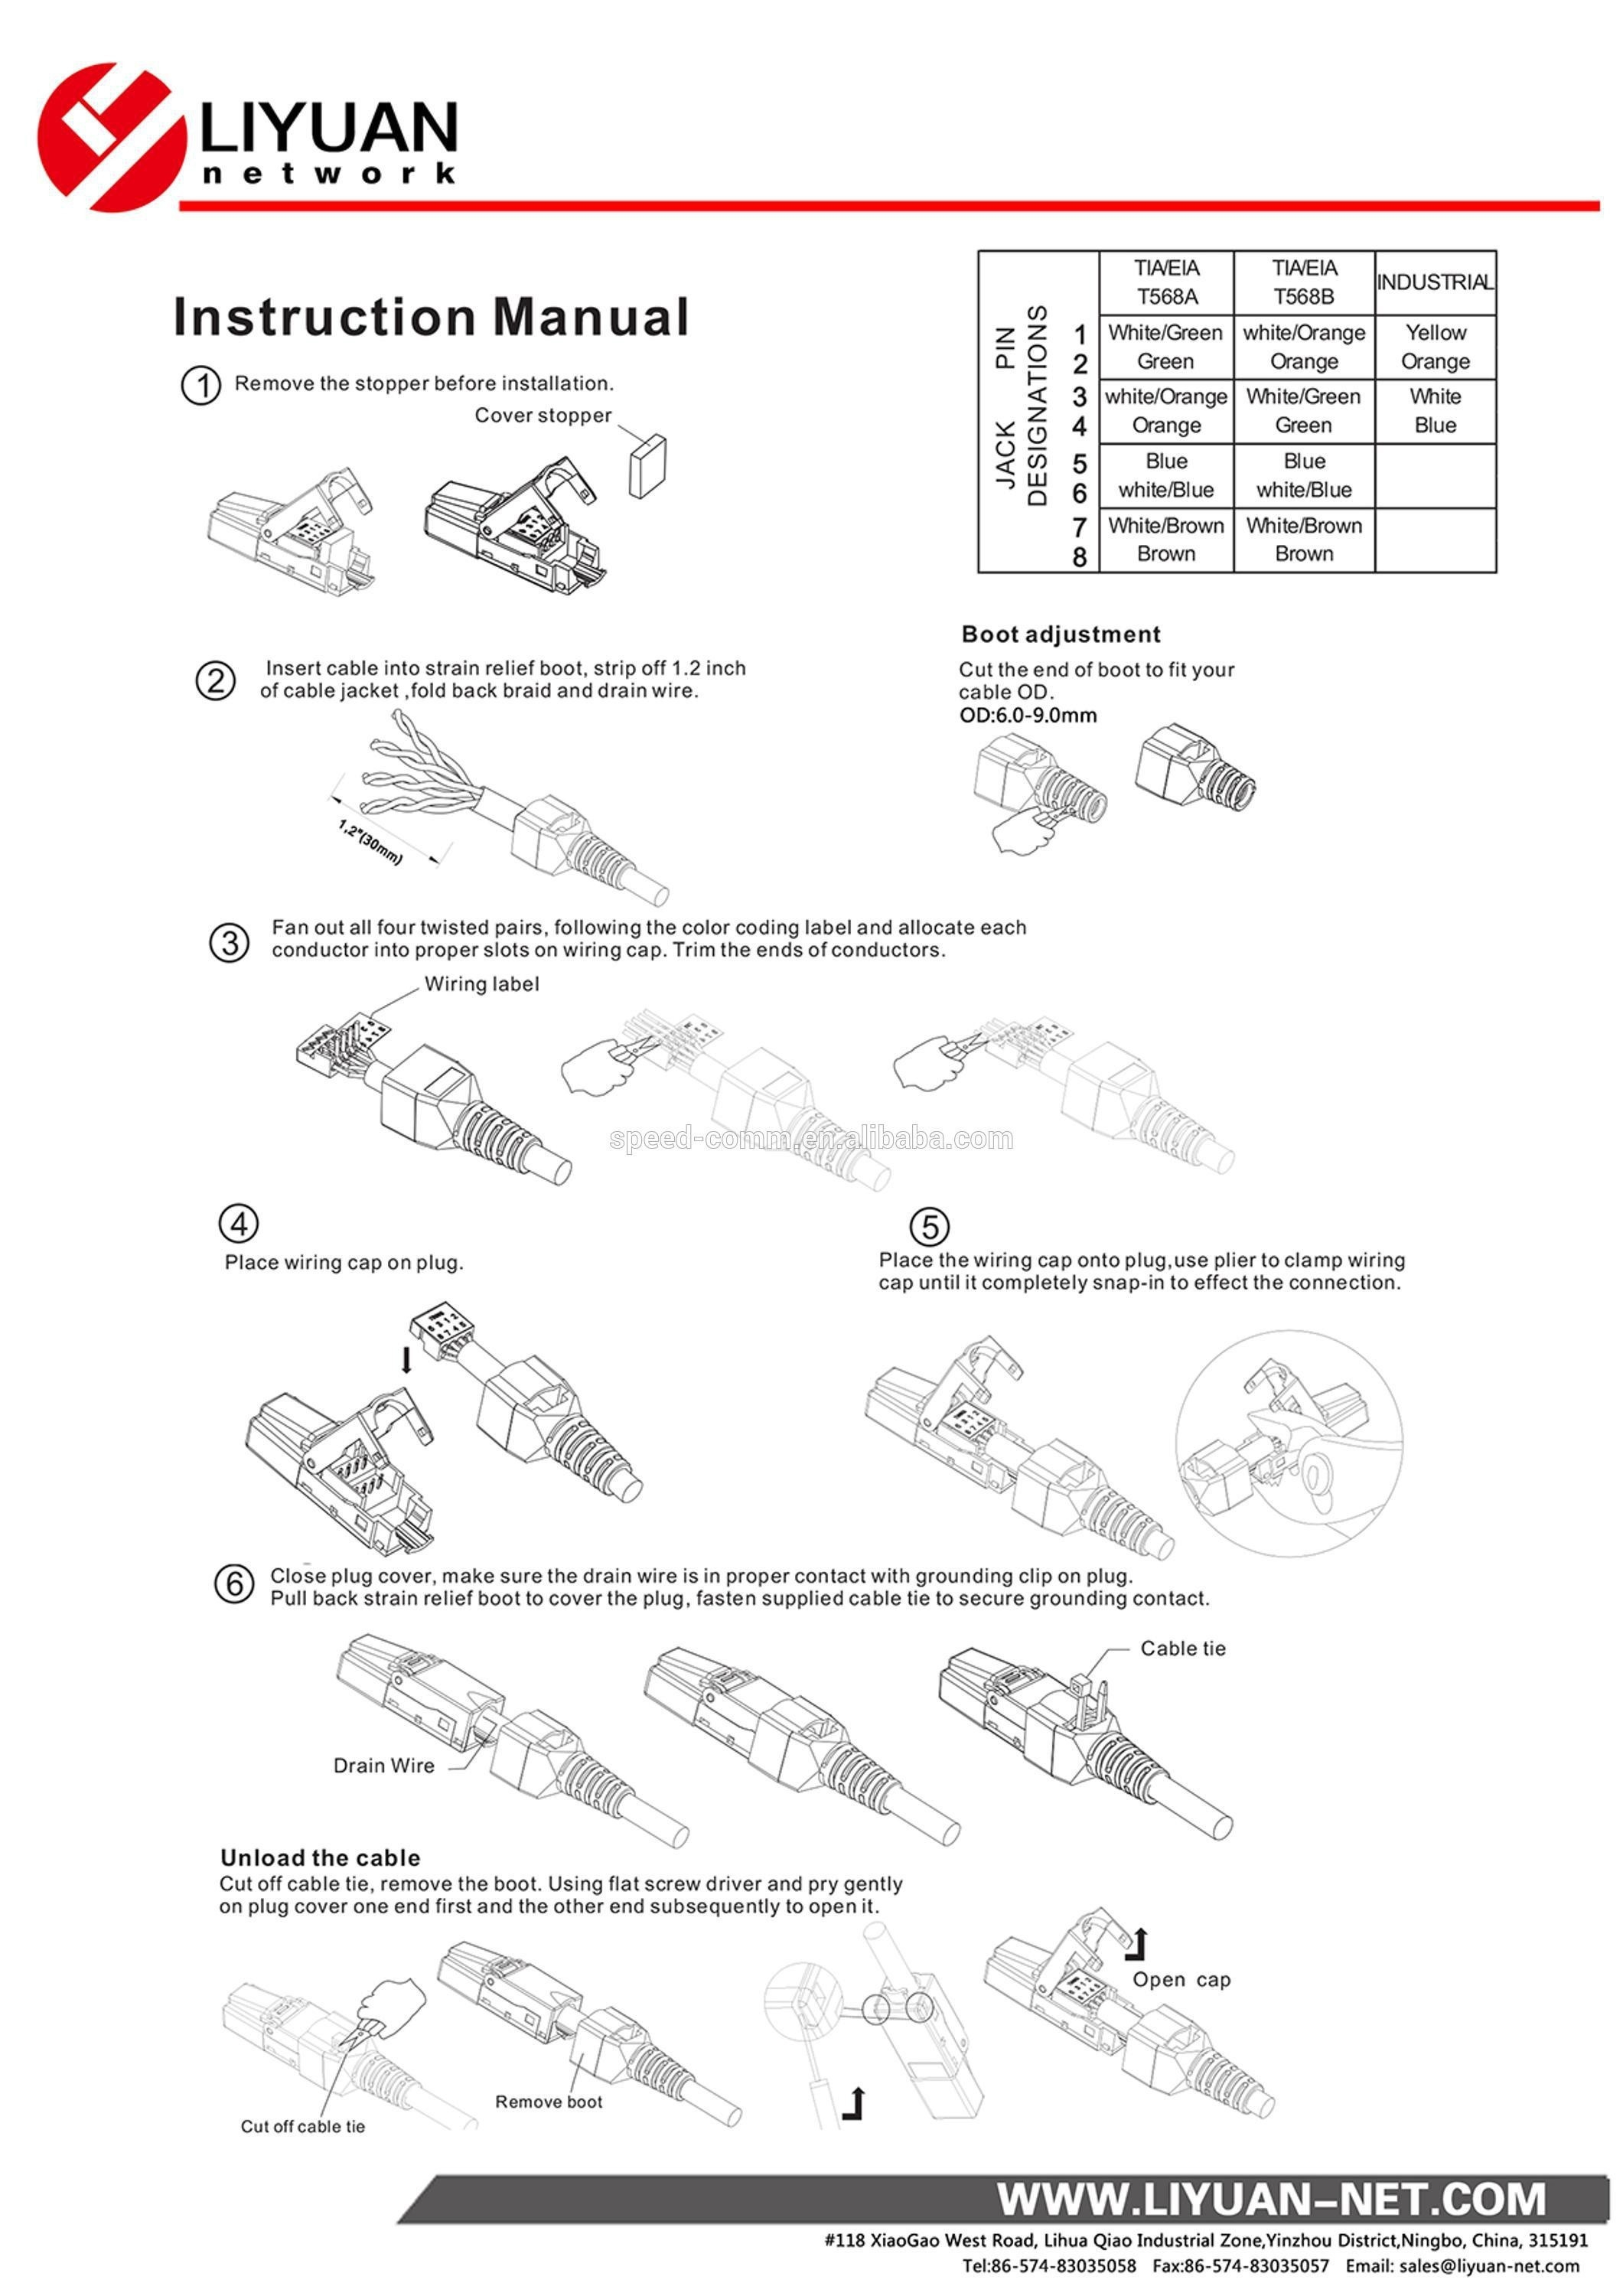 bmw code diagram electrical wiring color code diagram bmw wiring diagram color codes | free wiring diagram